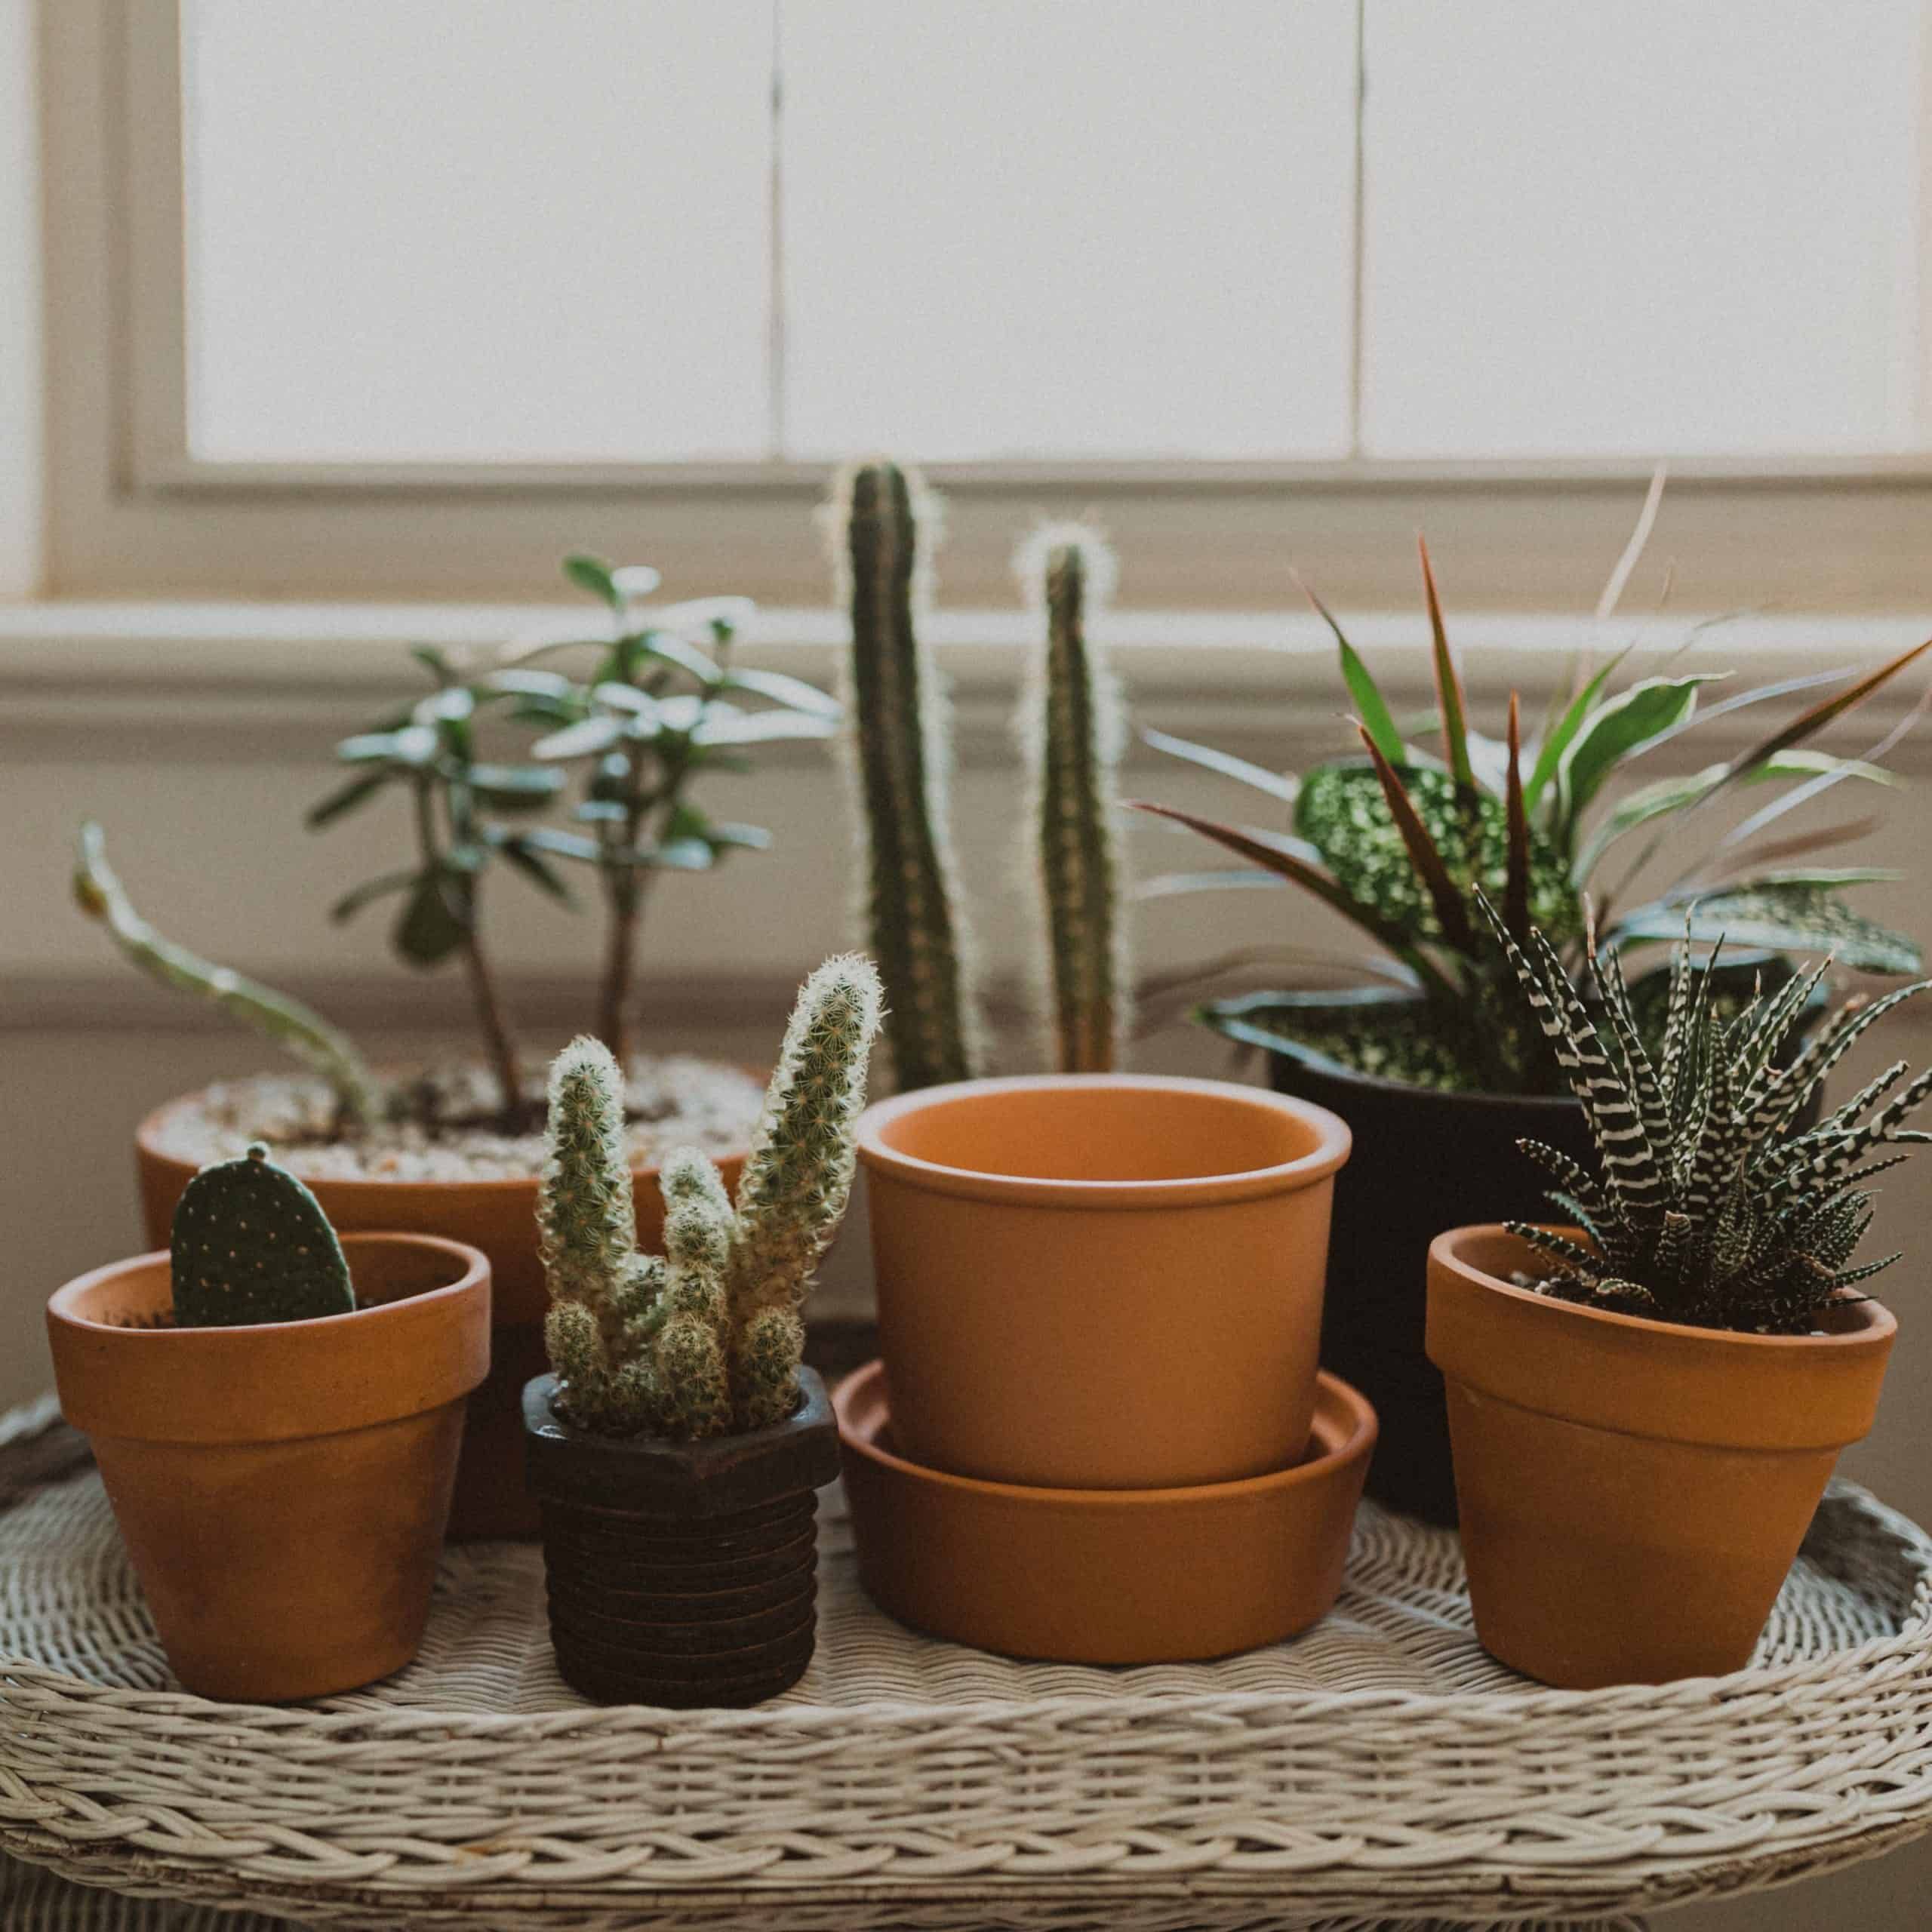 Benefits Of Gardening Containers